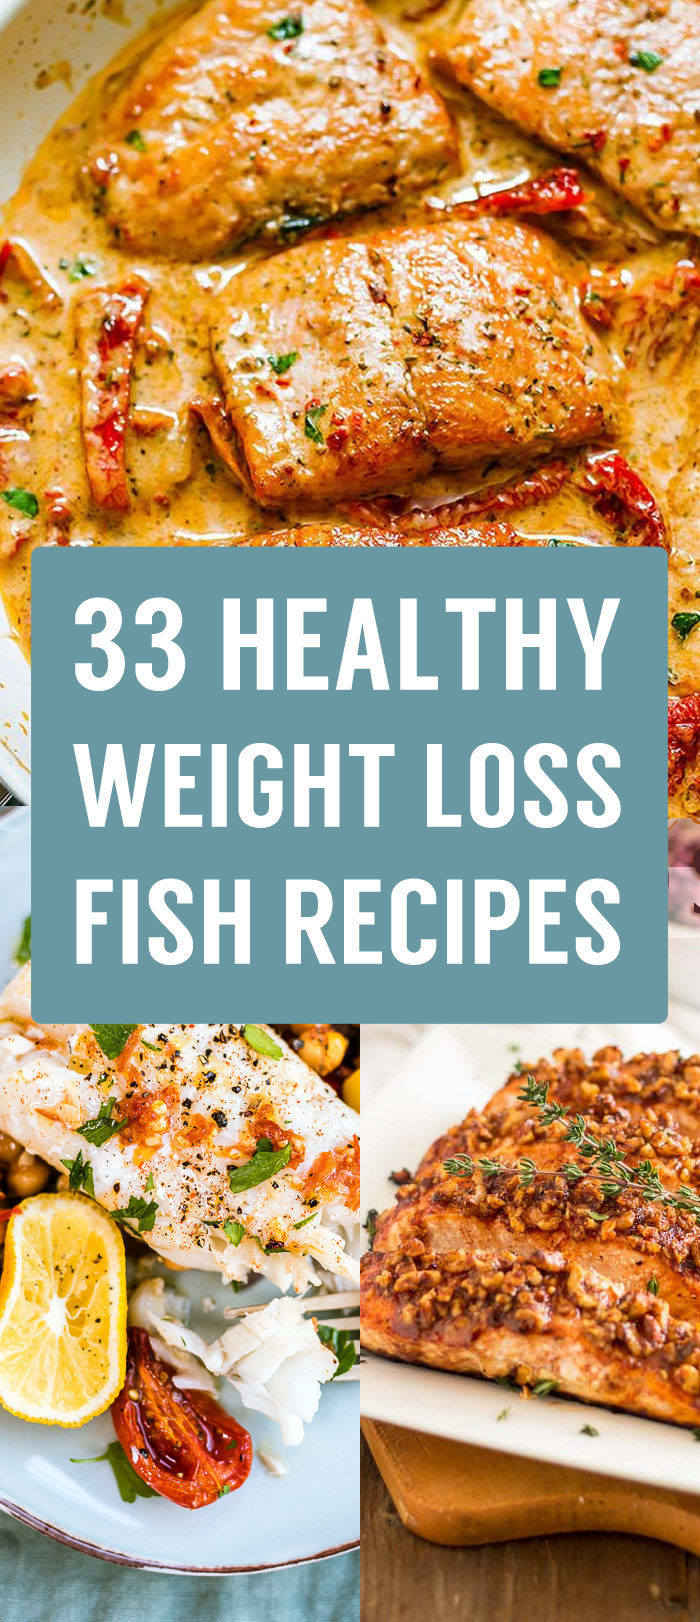 33 weight loss fish recipes that you will love for Healthiest fish to eat for weight loss